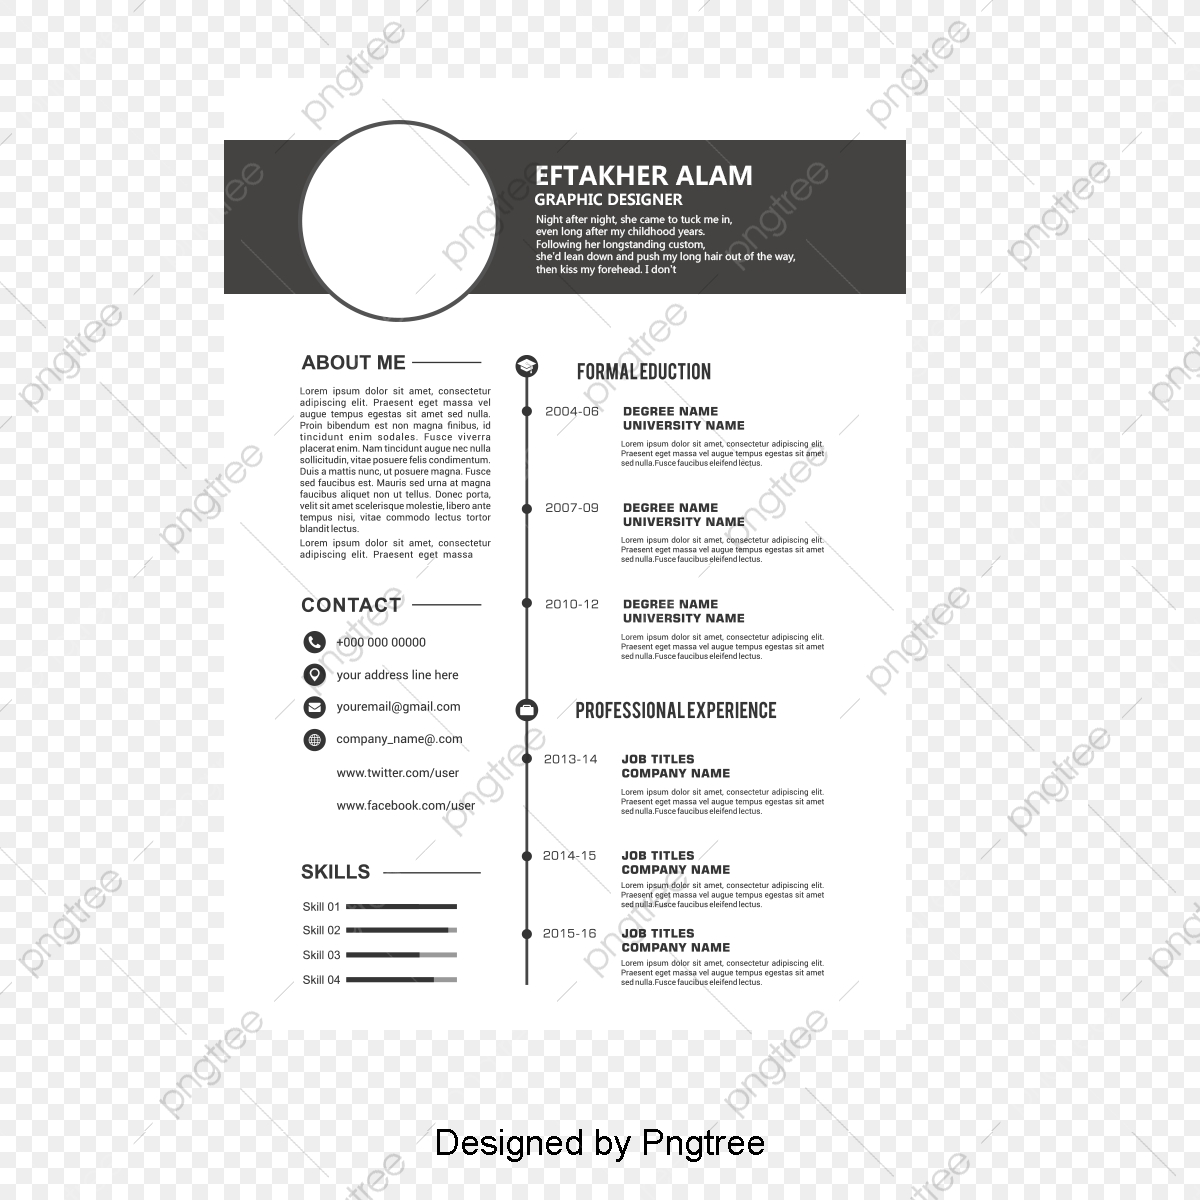 Black Header Resume Templates Curriculum Vitae Stencil Black Theme Png Transparent Clipart Image And Psd File For Free Download